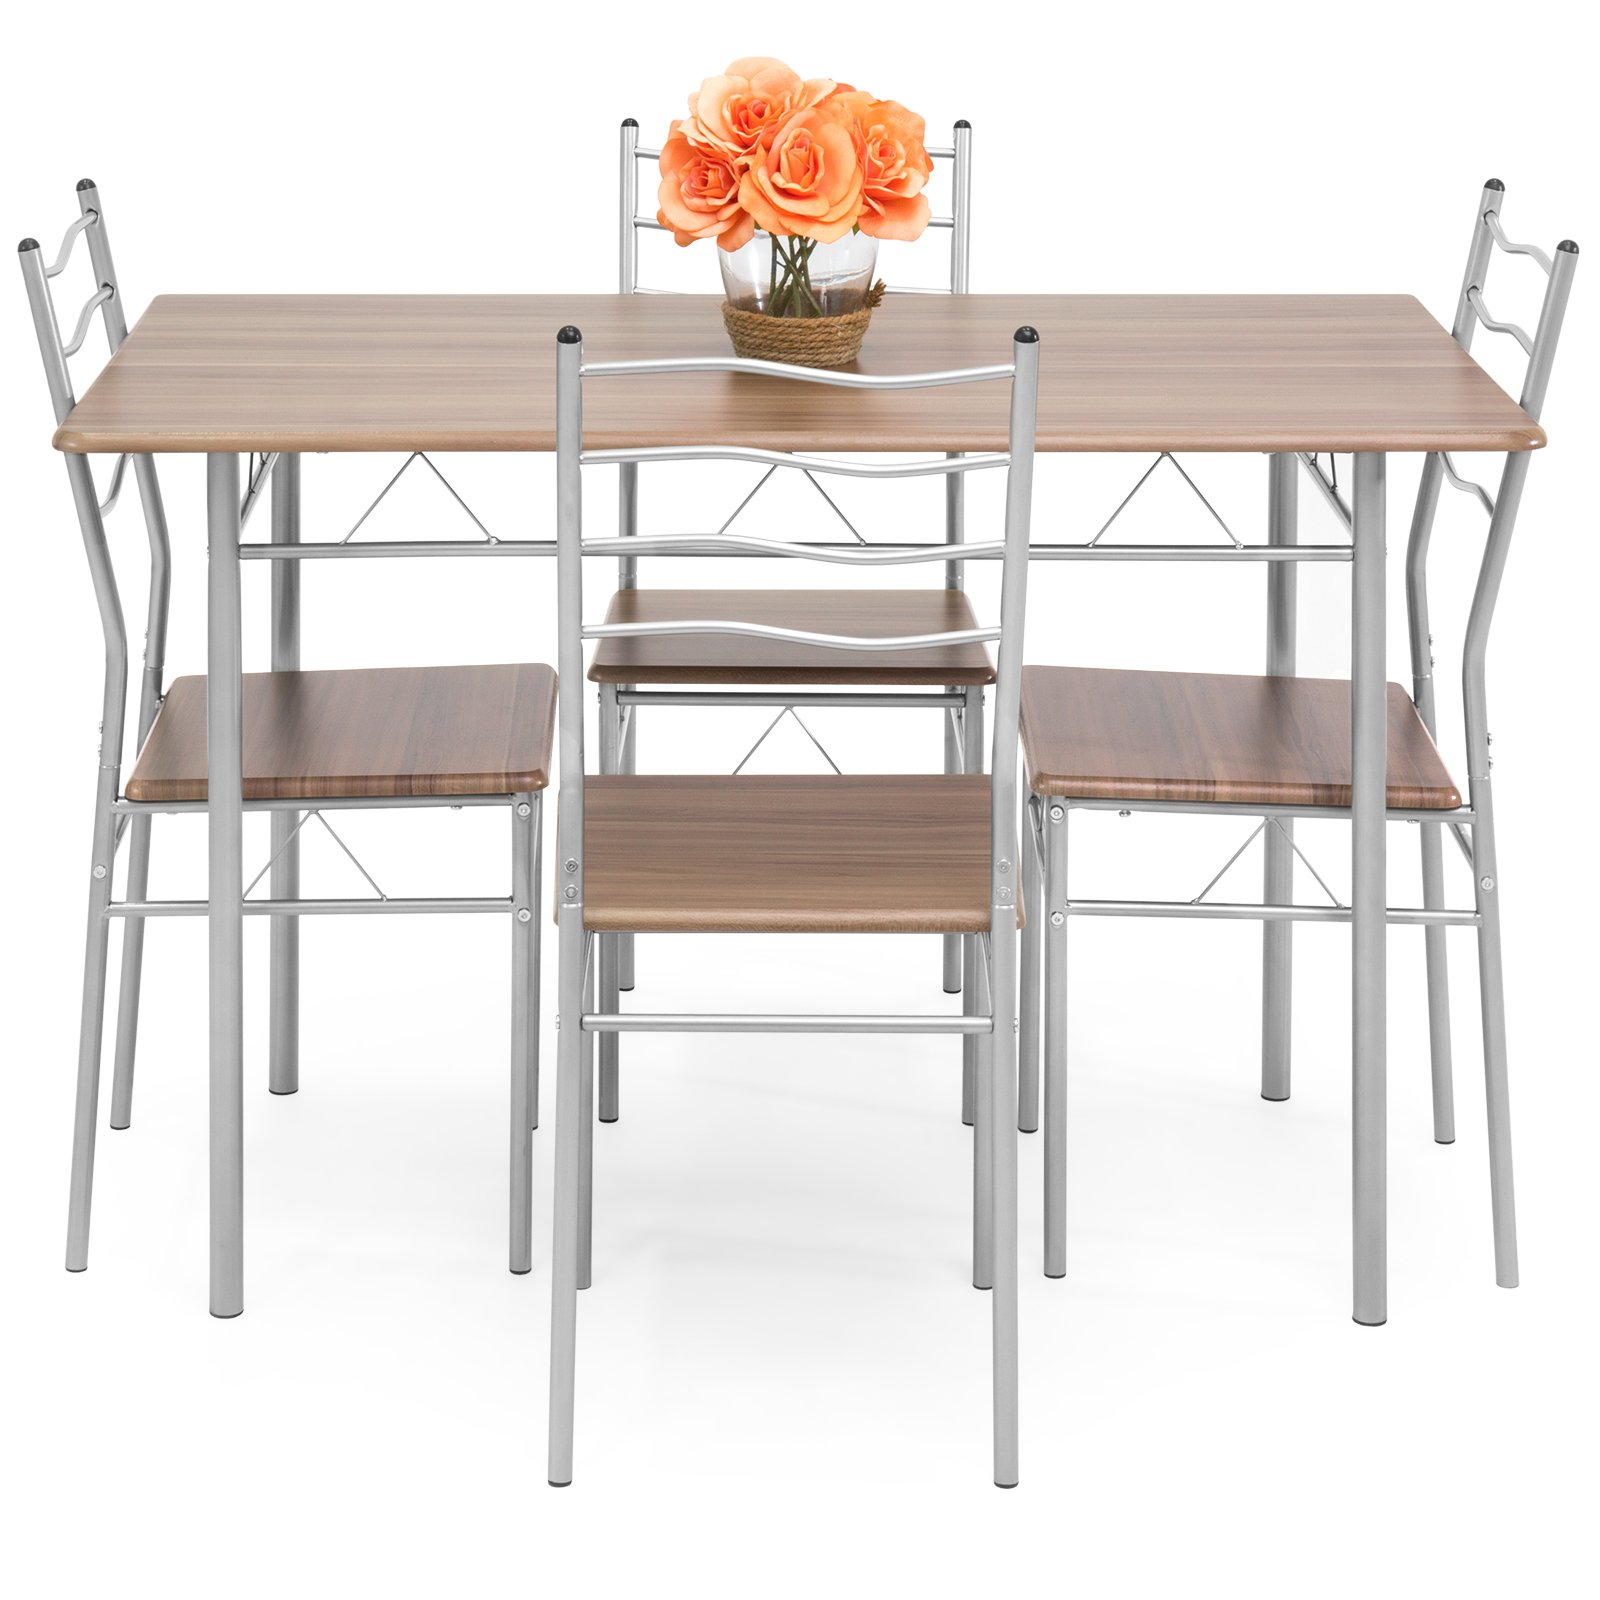 Best Choice Products 5-Piece 4-Foot Modern Wooden Kitchen Table Dining Set w/Metal Legs, 4 Chairs, Brown/Silver by Best Choice Products (Image #8)